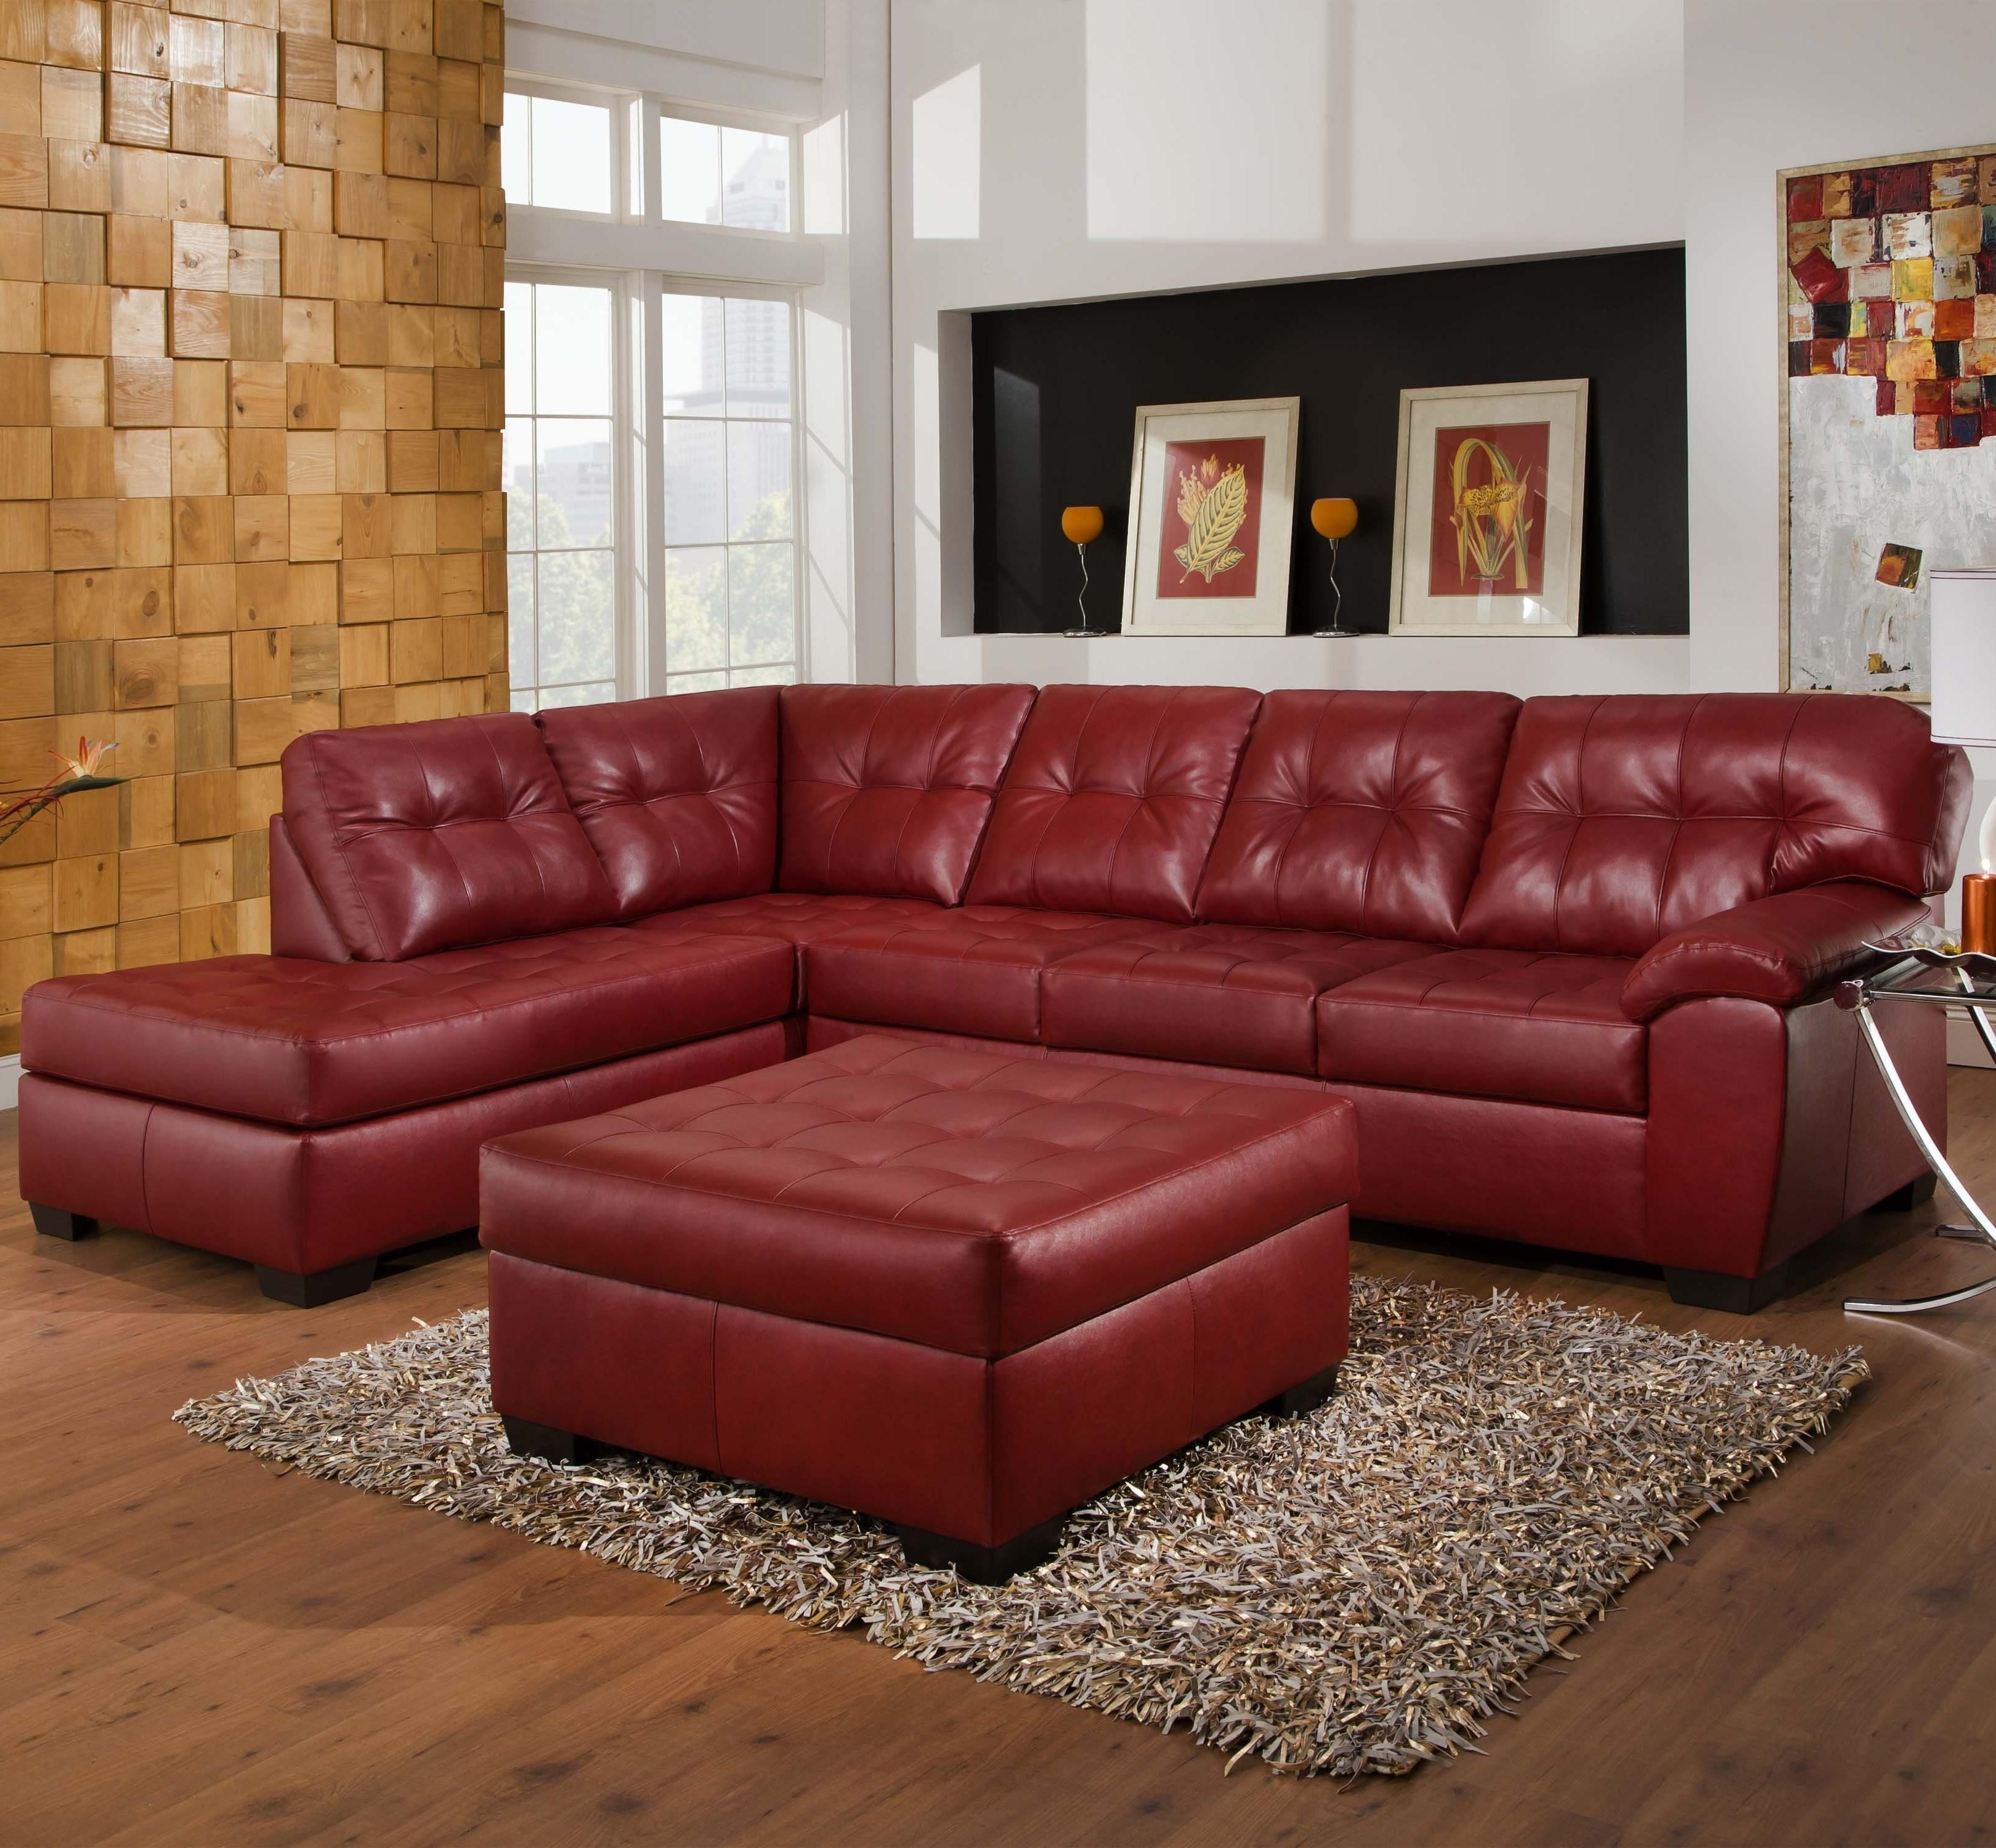 Favorite 9569 2 Piece Sectional With Tufted Seats & Backsimmons Inside Jackson Tn Sectional Sofas (View 6 of 15)